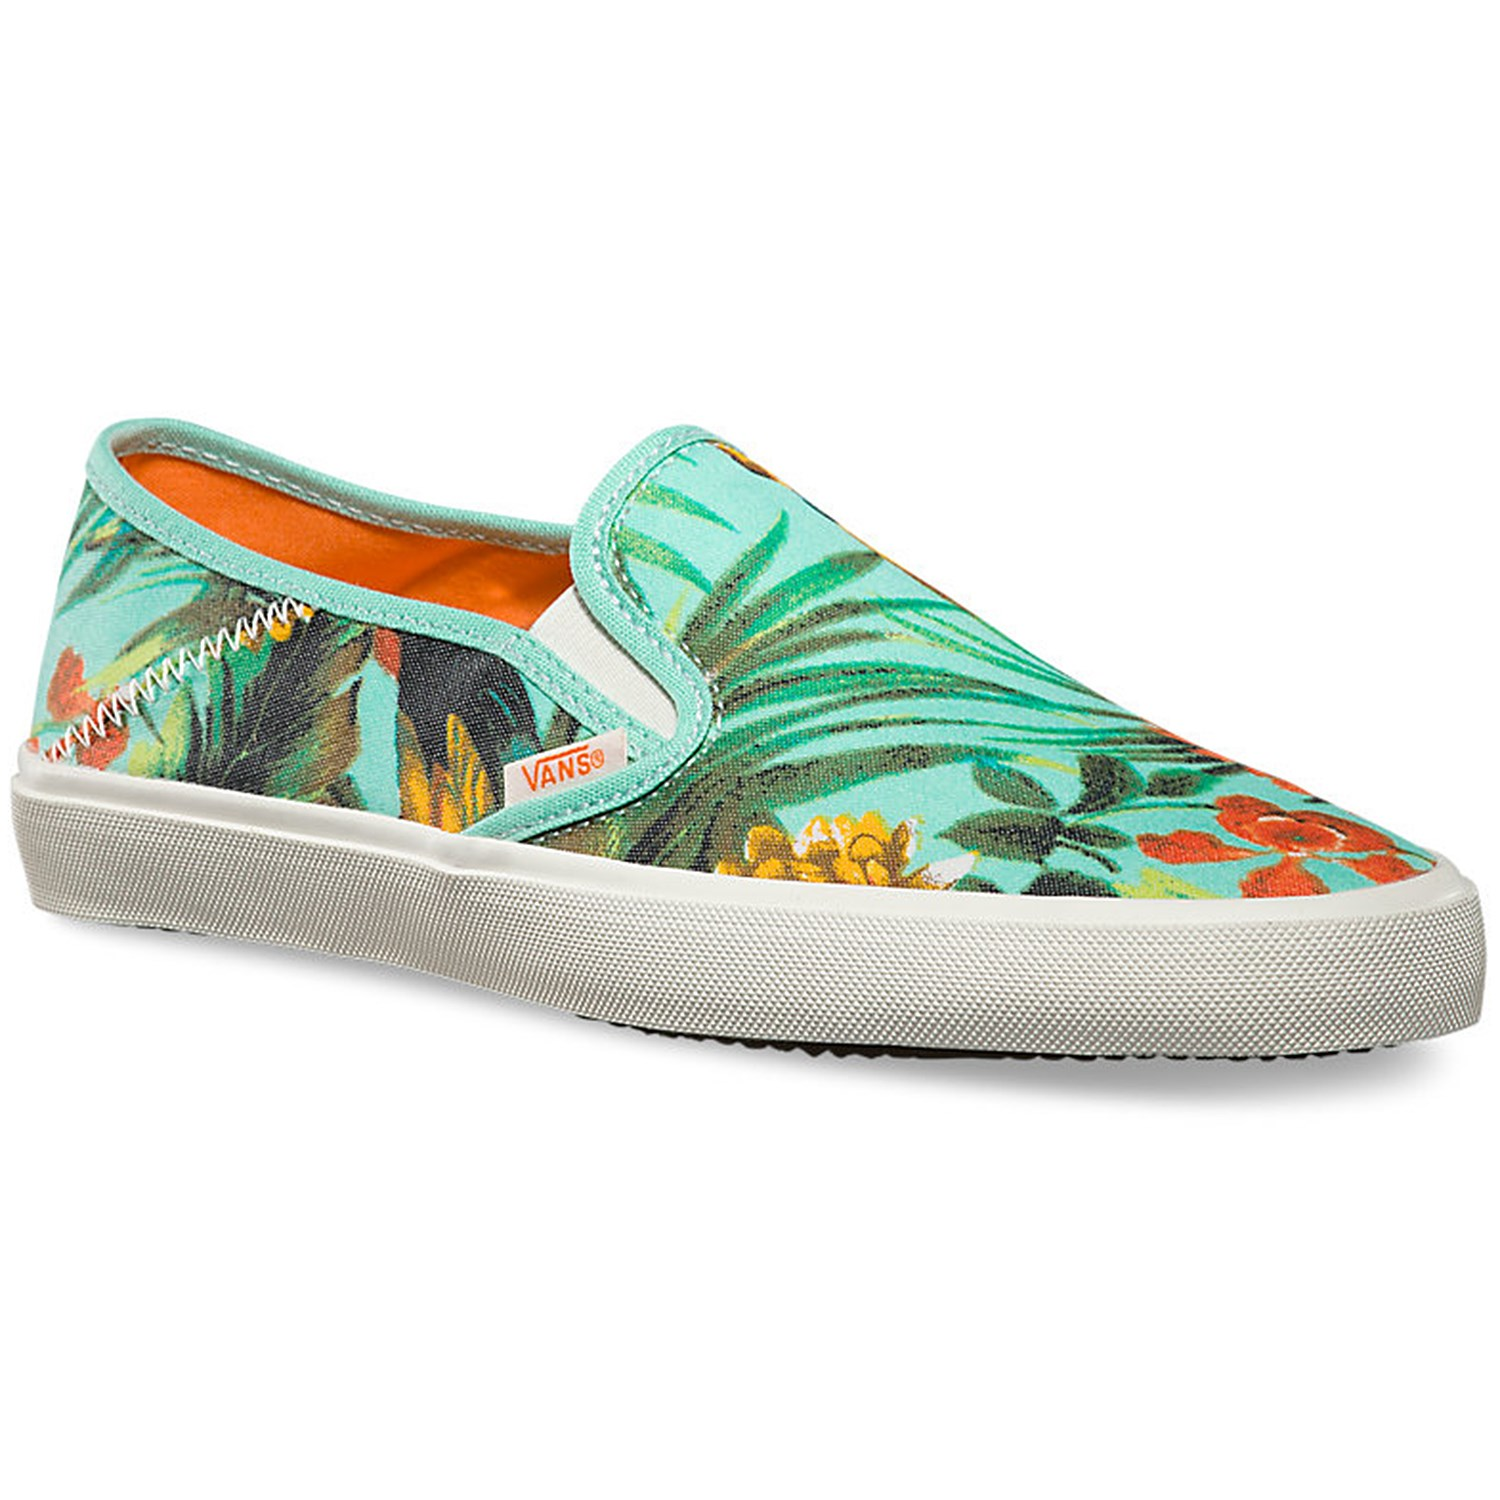 vans slip on beach shoes